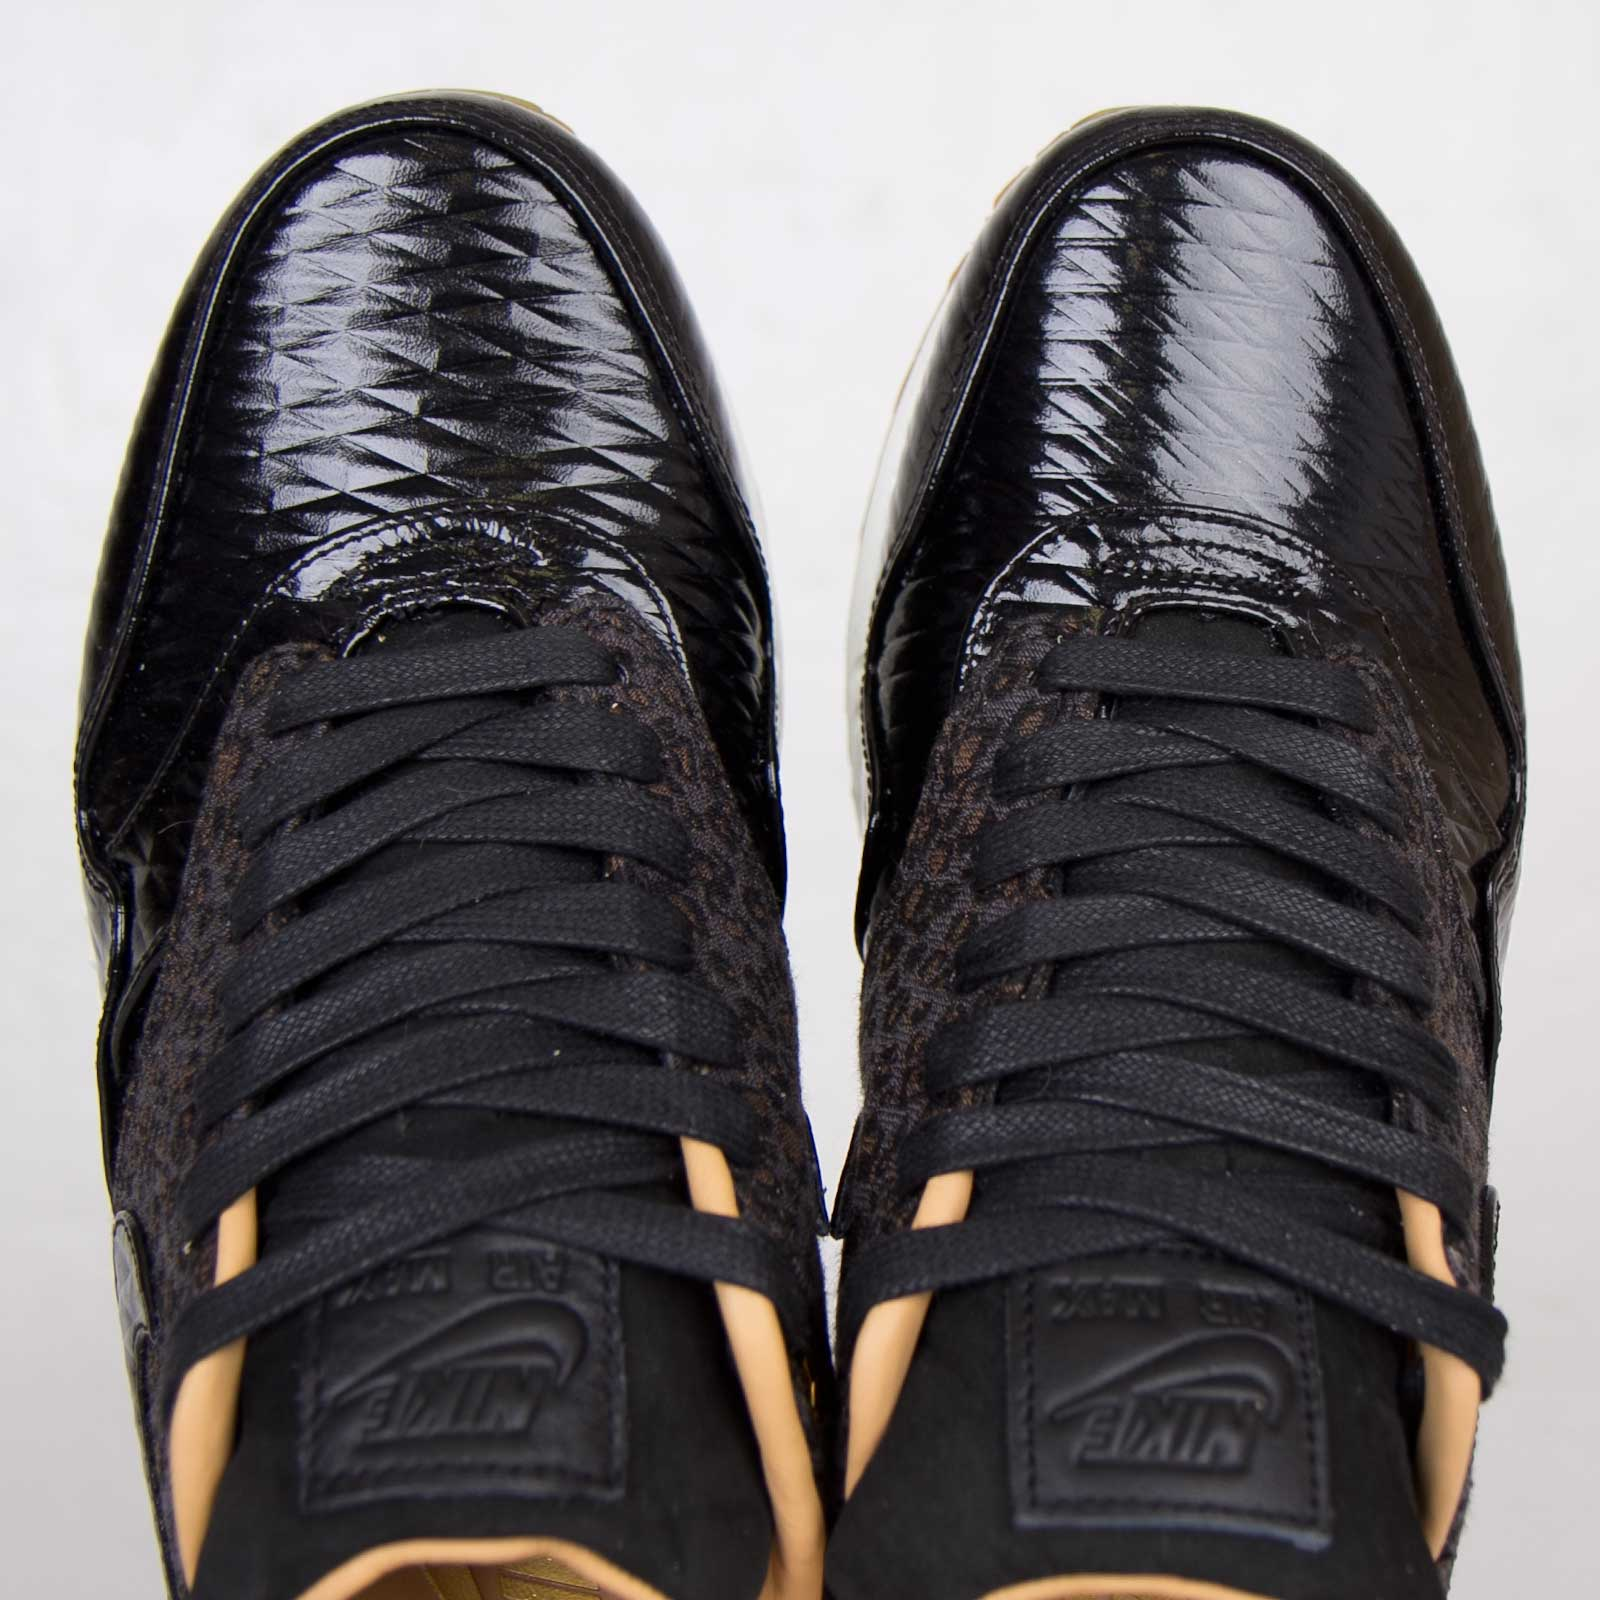 reputable site d5fe8 c1c6e Nike Air Max 1 Fb Woven Size 5.5